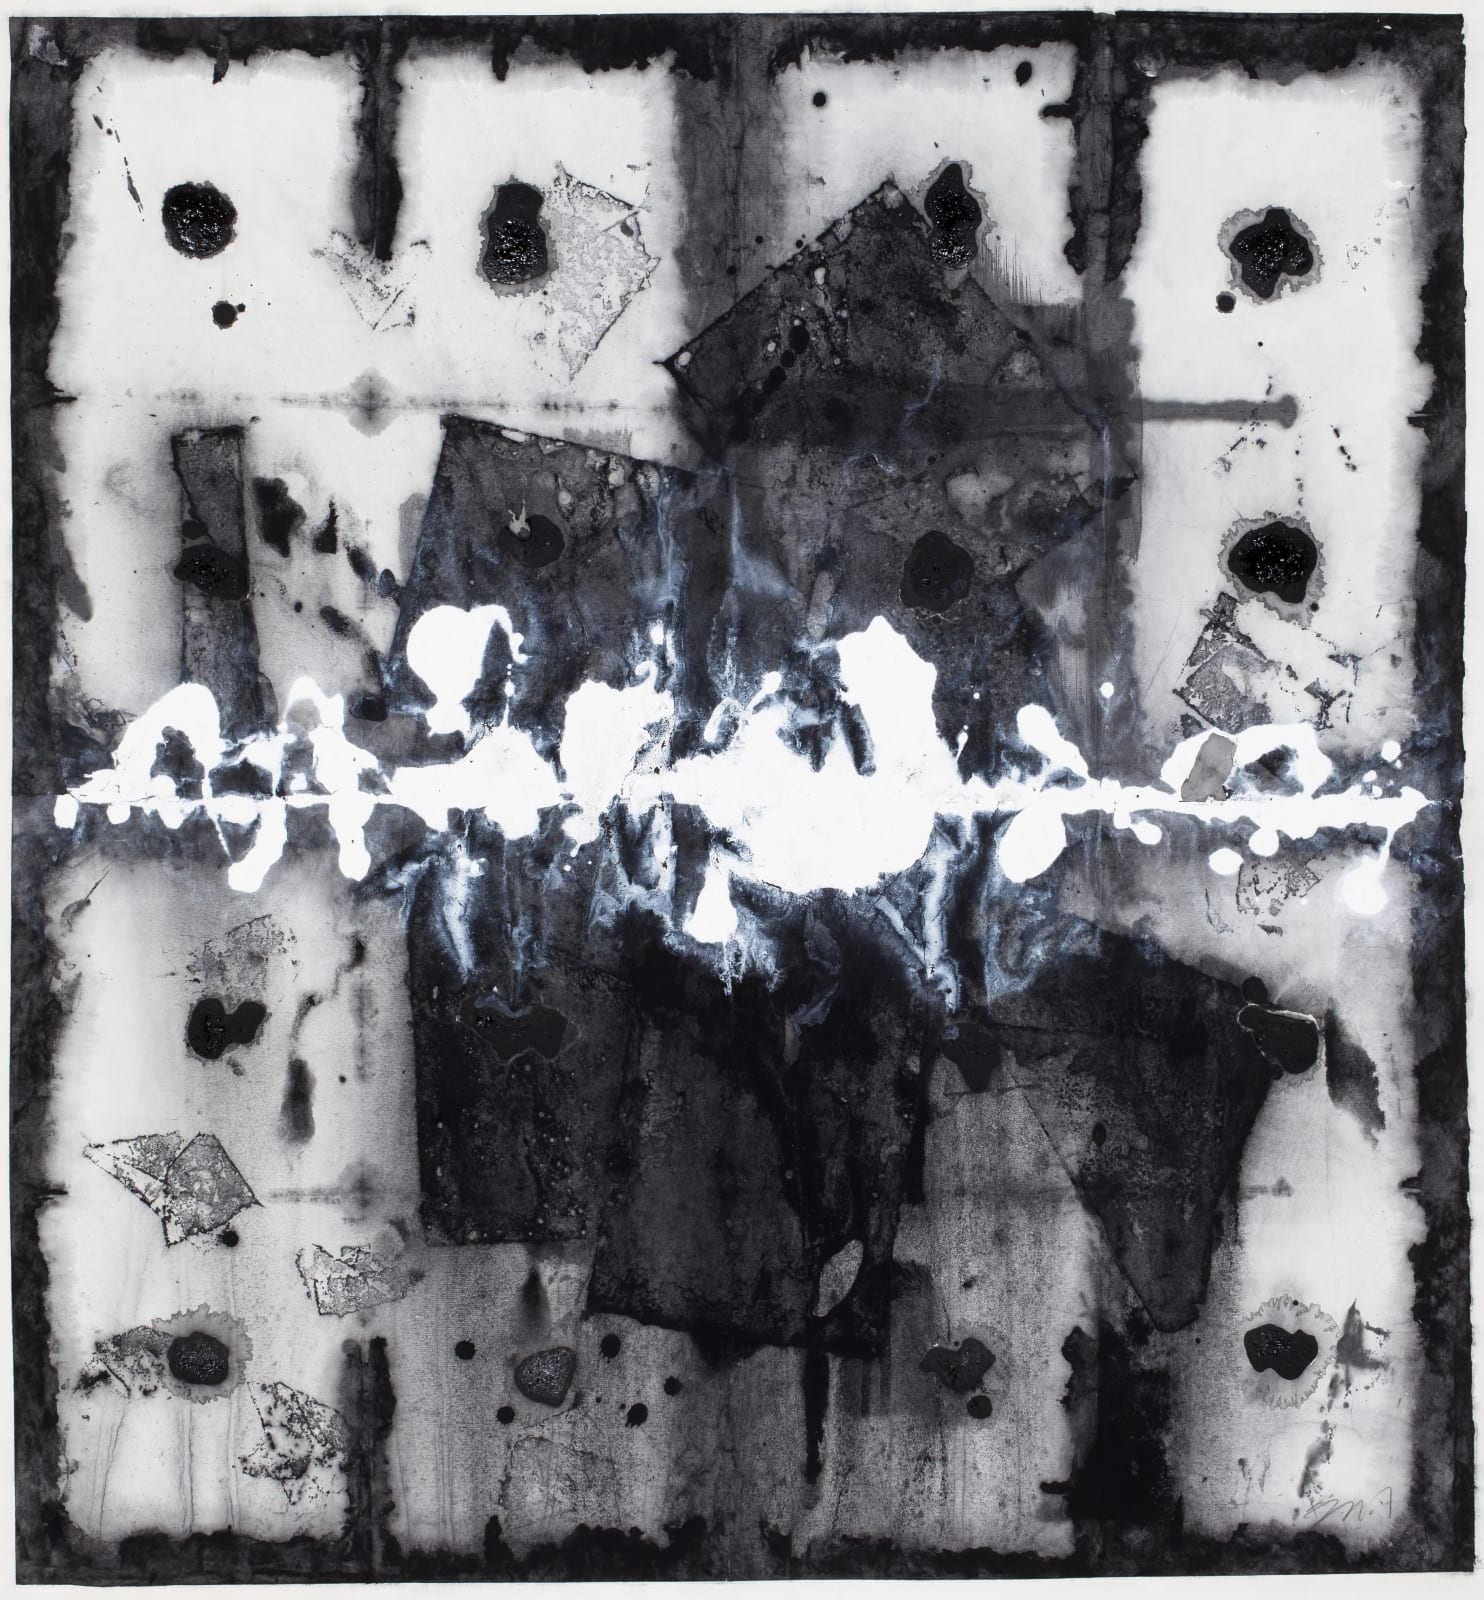 Li Gang 李綱, Elements of Ink and Wash 水墨元素 No.20120402, 2012